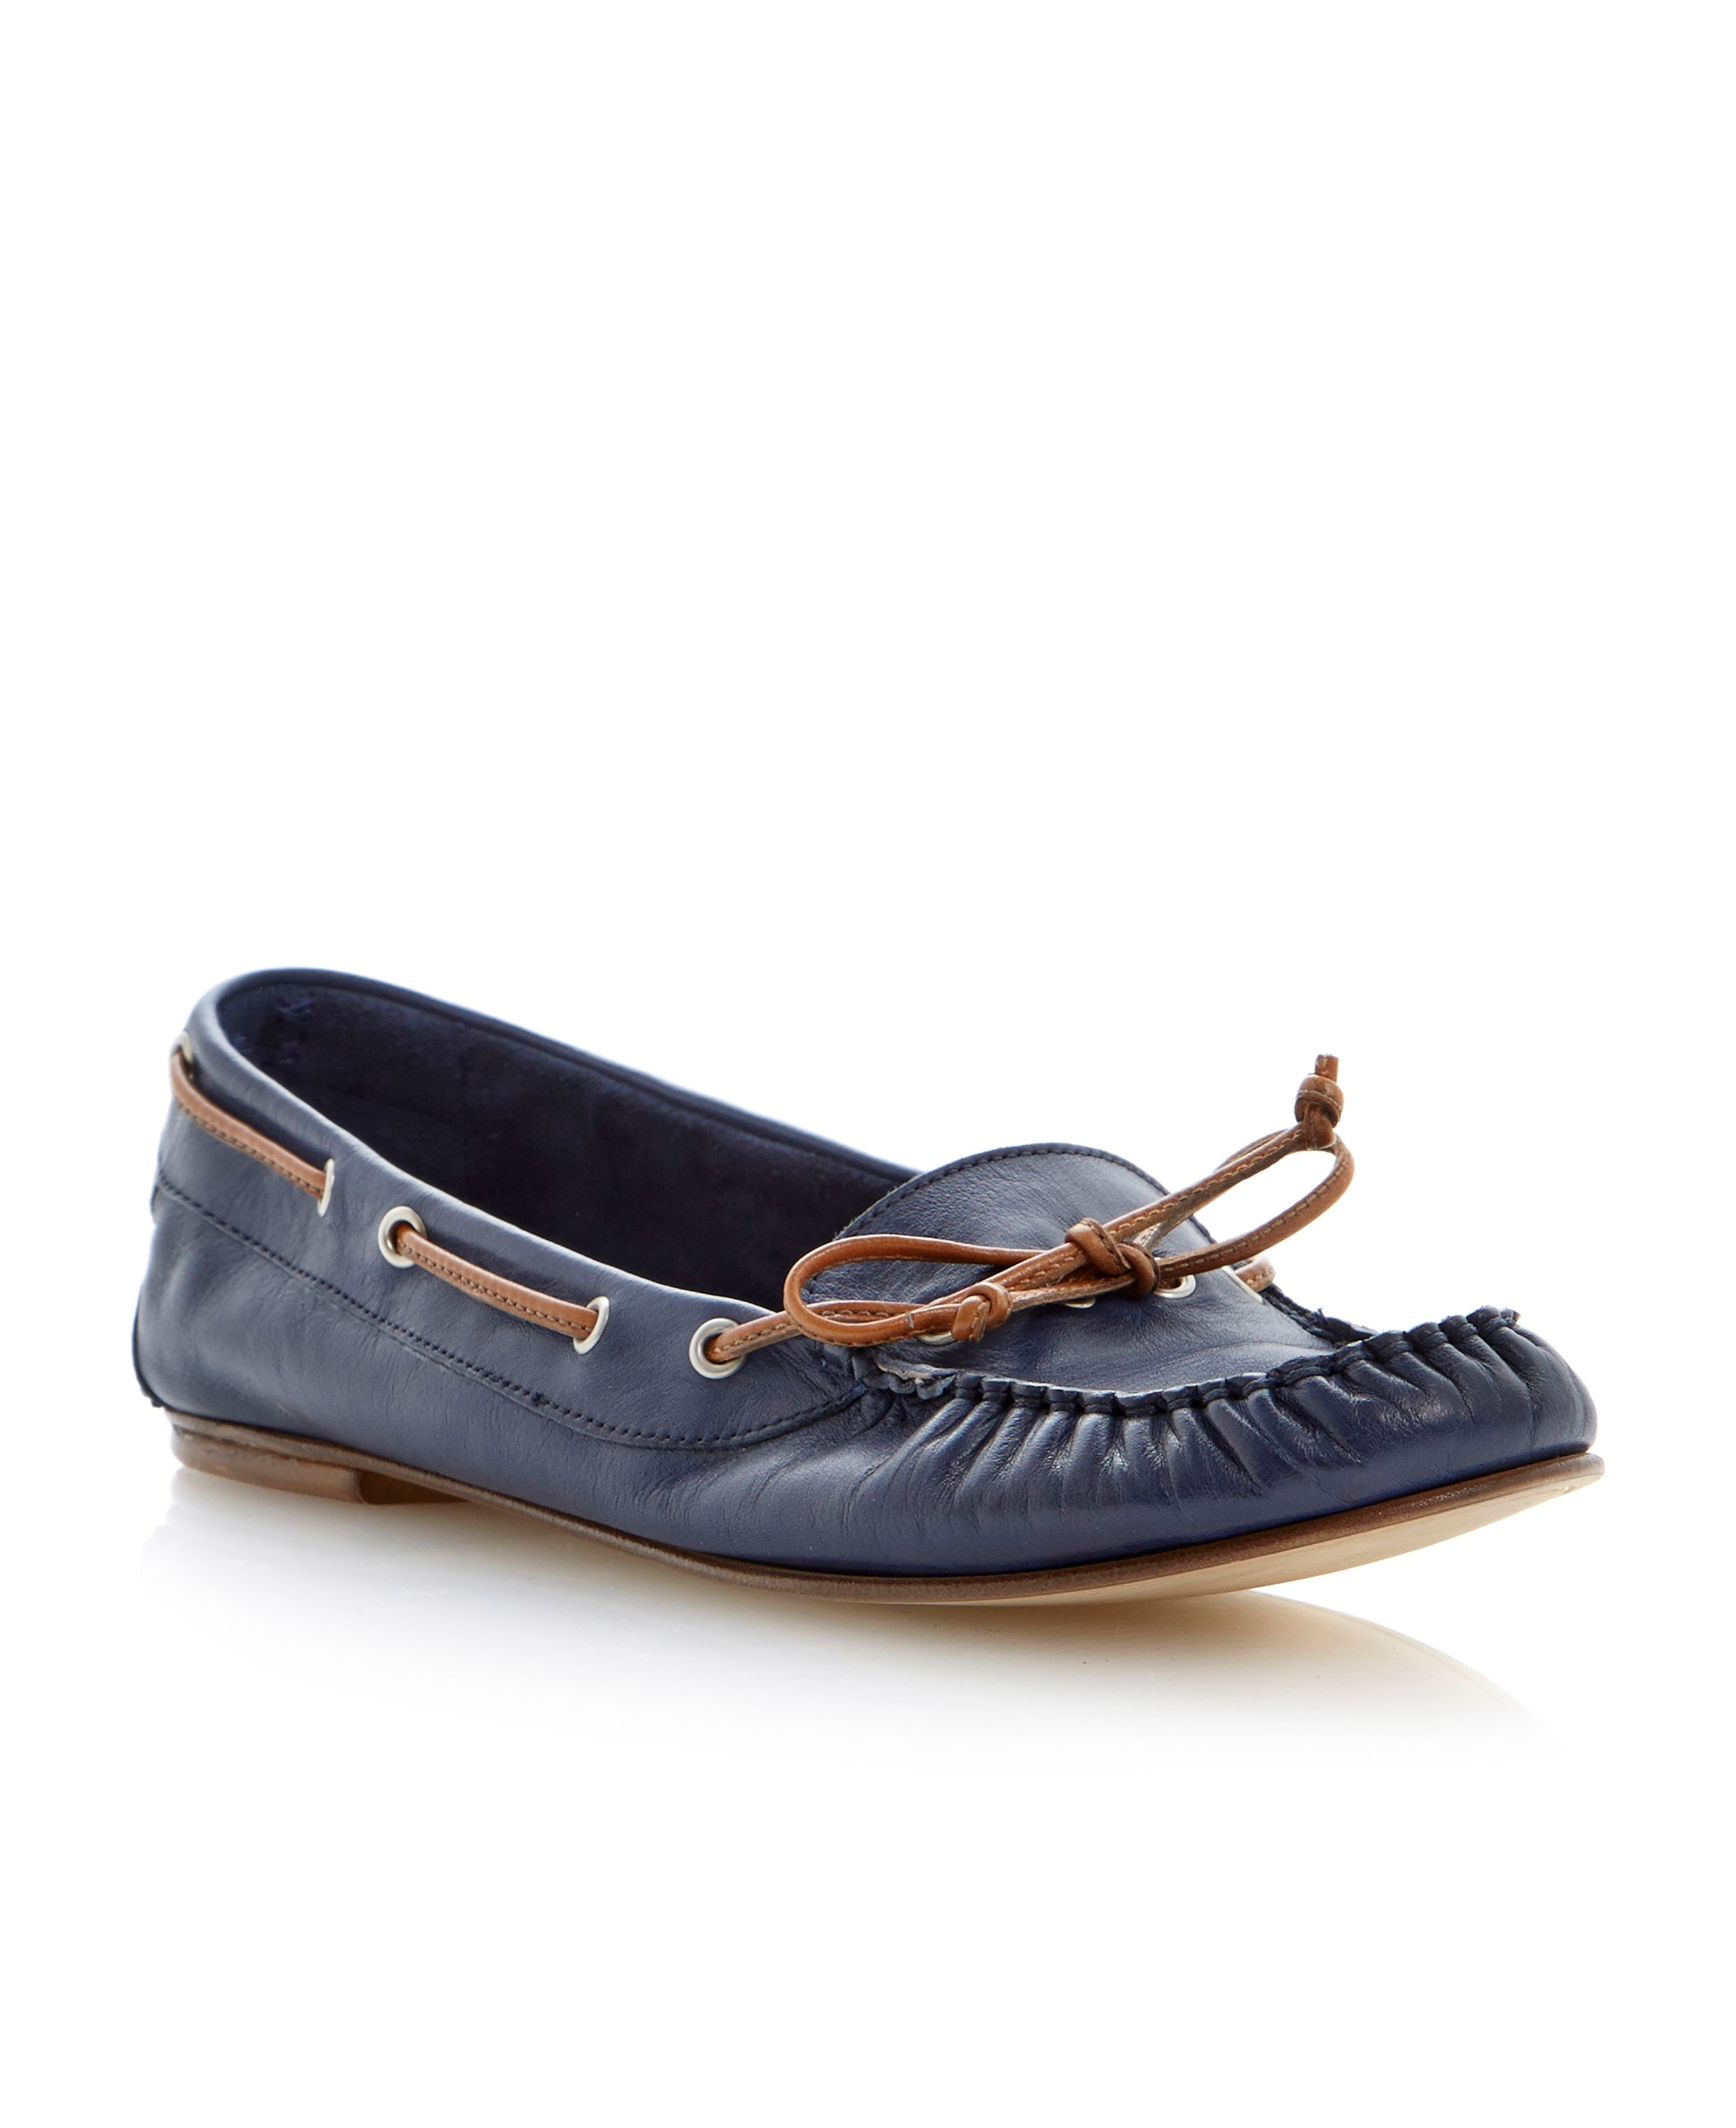 Linda leather round toe flat mocassin shoes